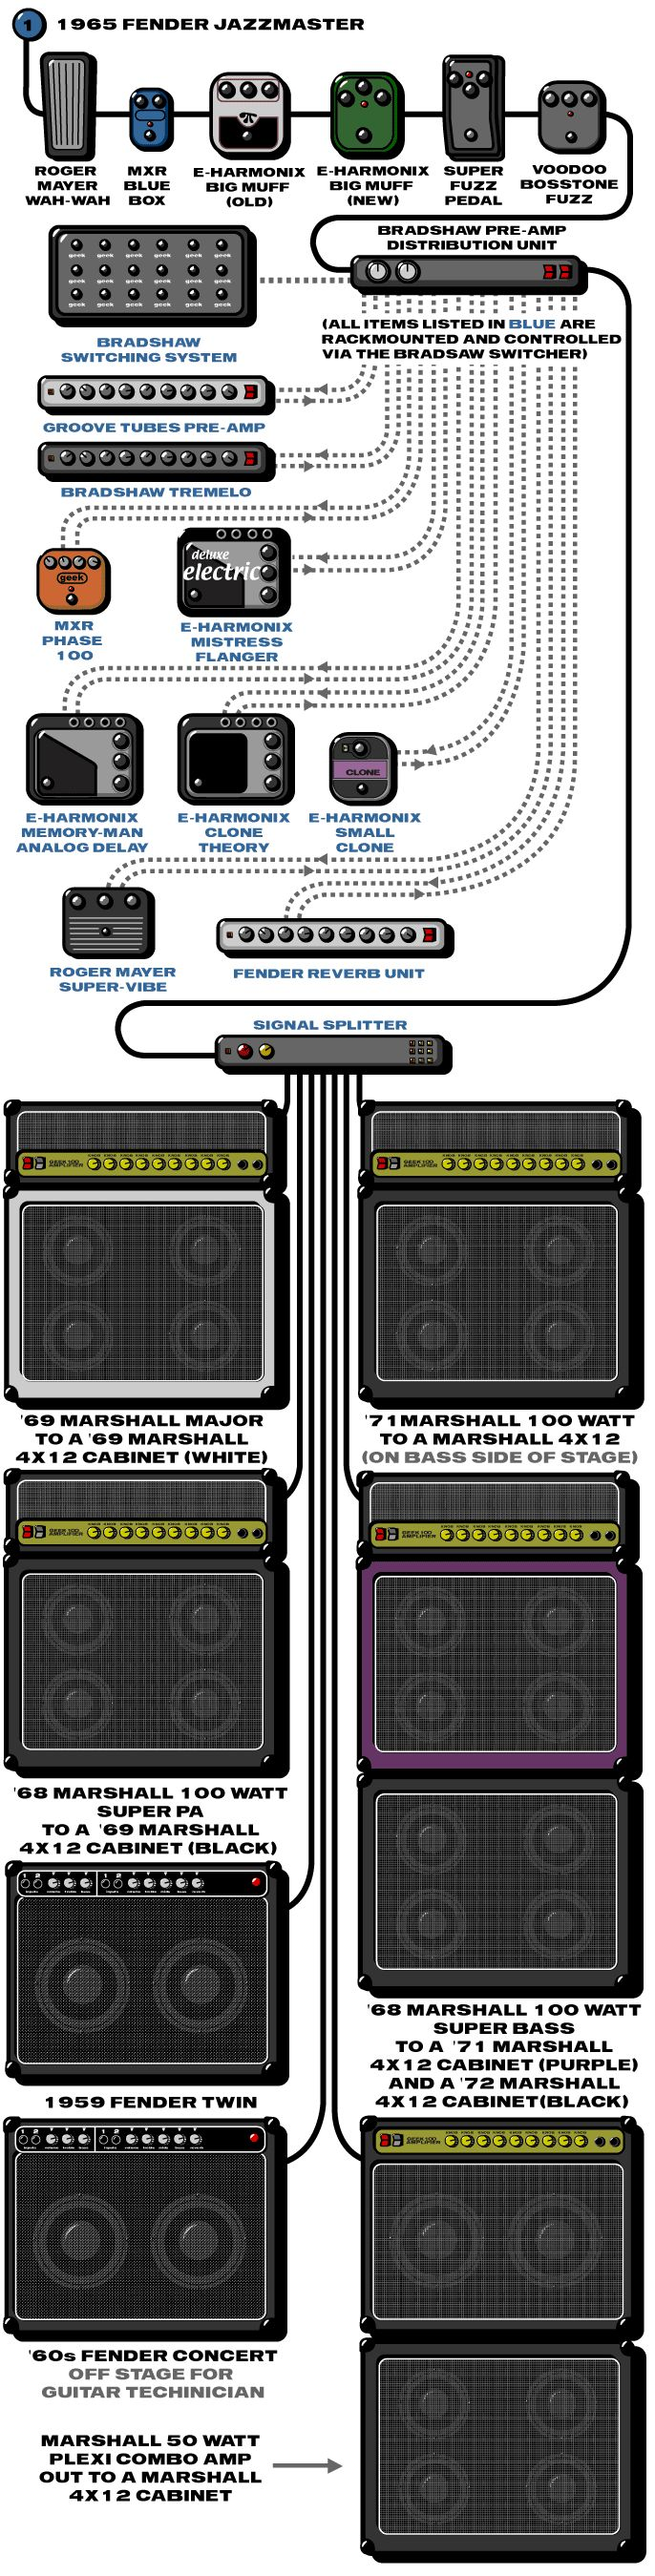 A detailed gear diagram of J Mascis' Dinosaur Jr stage setup that traces the signal flow of the equipment in his 1996 guitar rig.